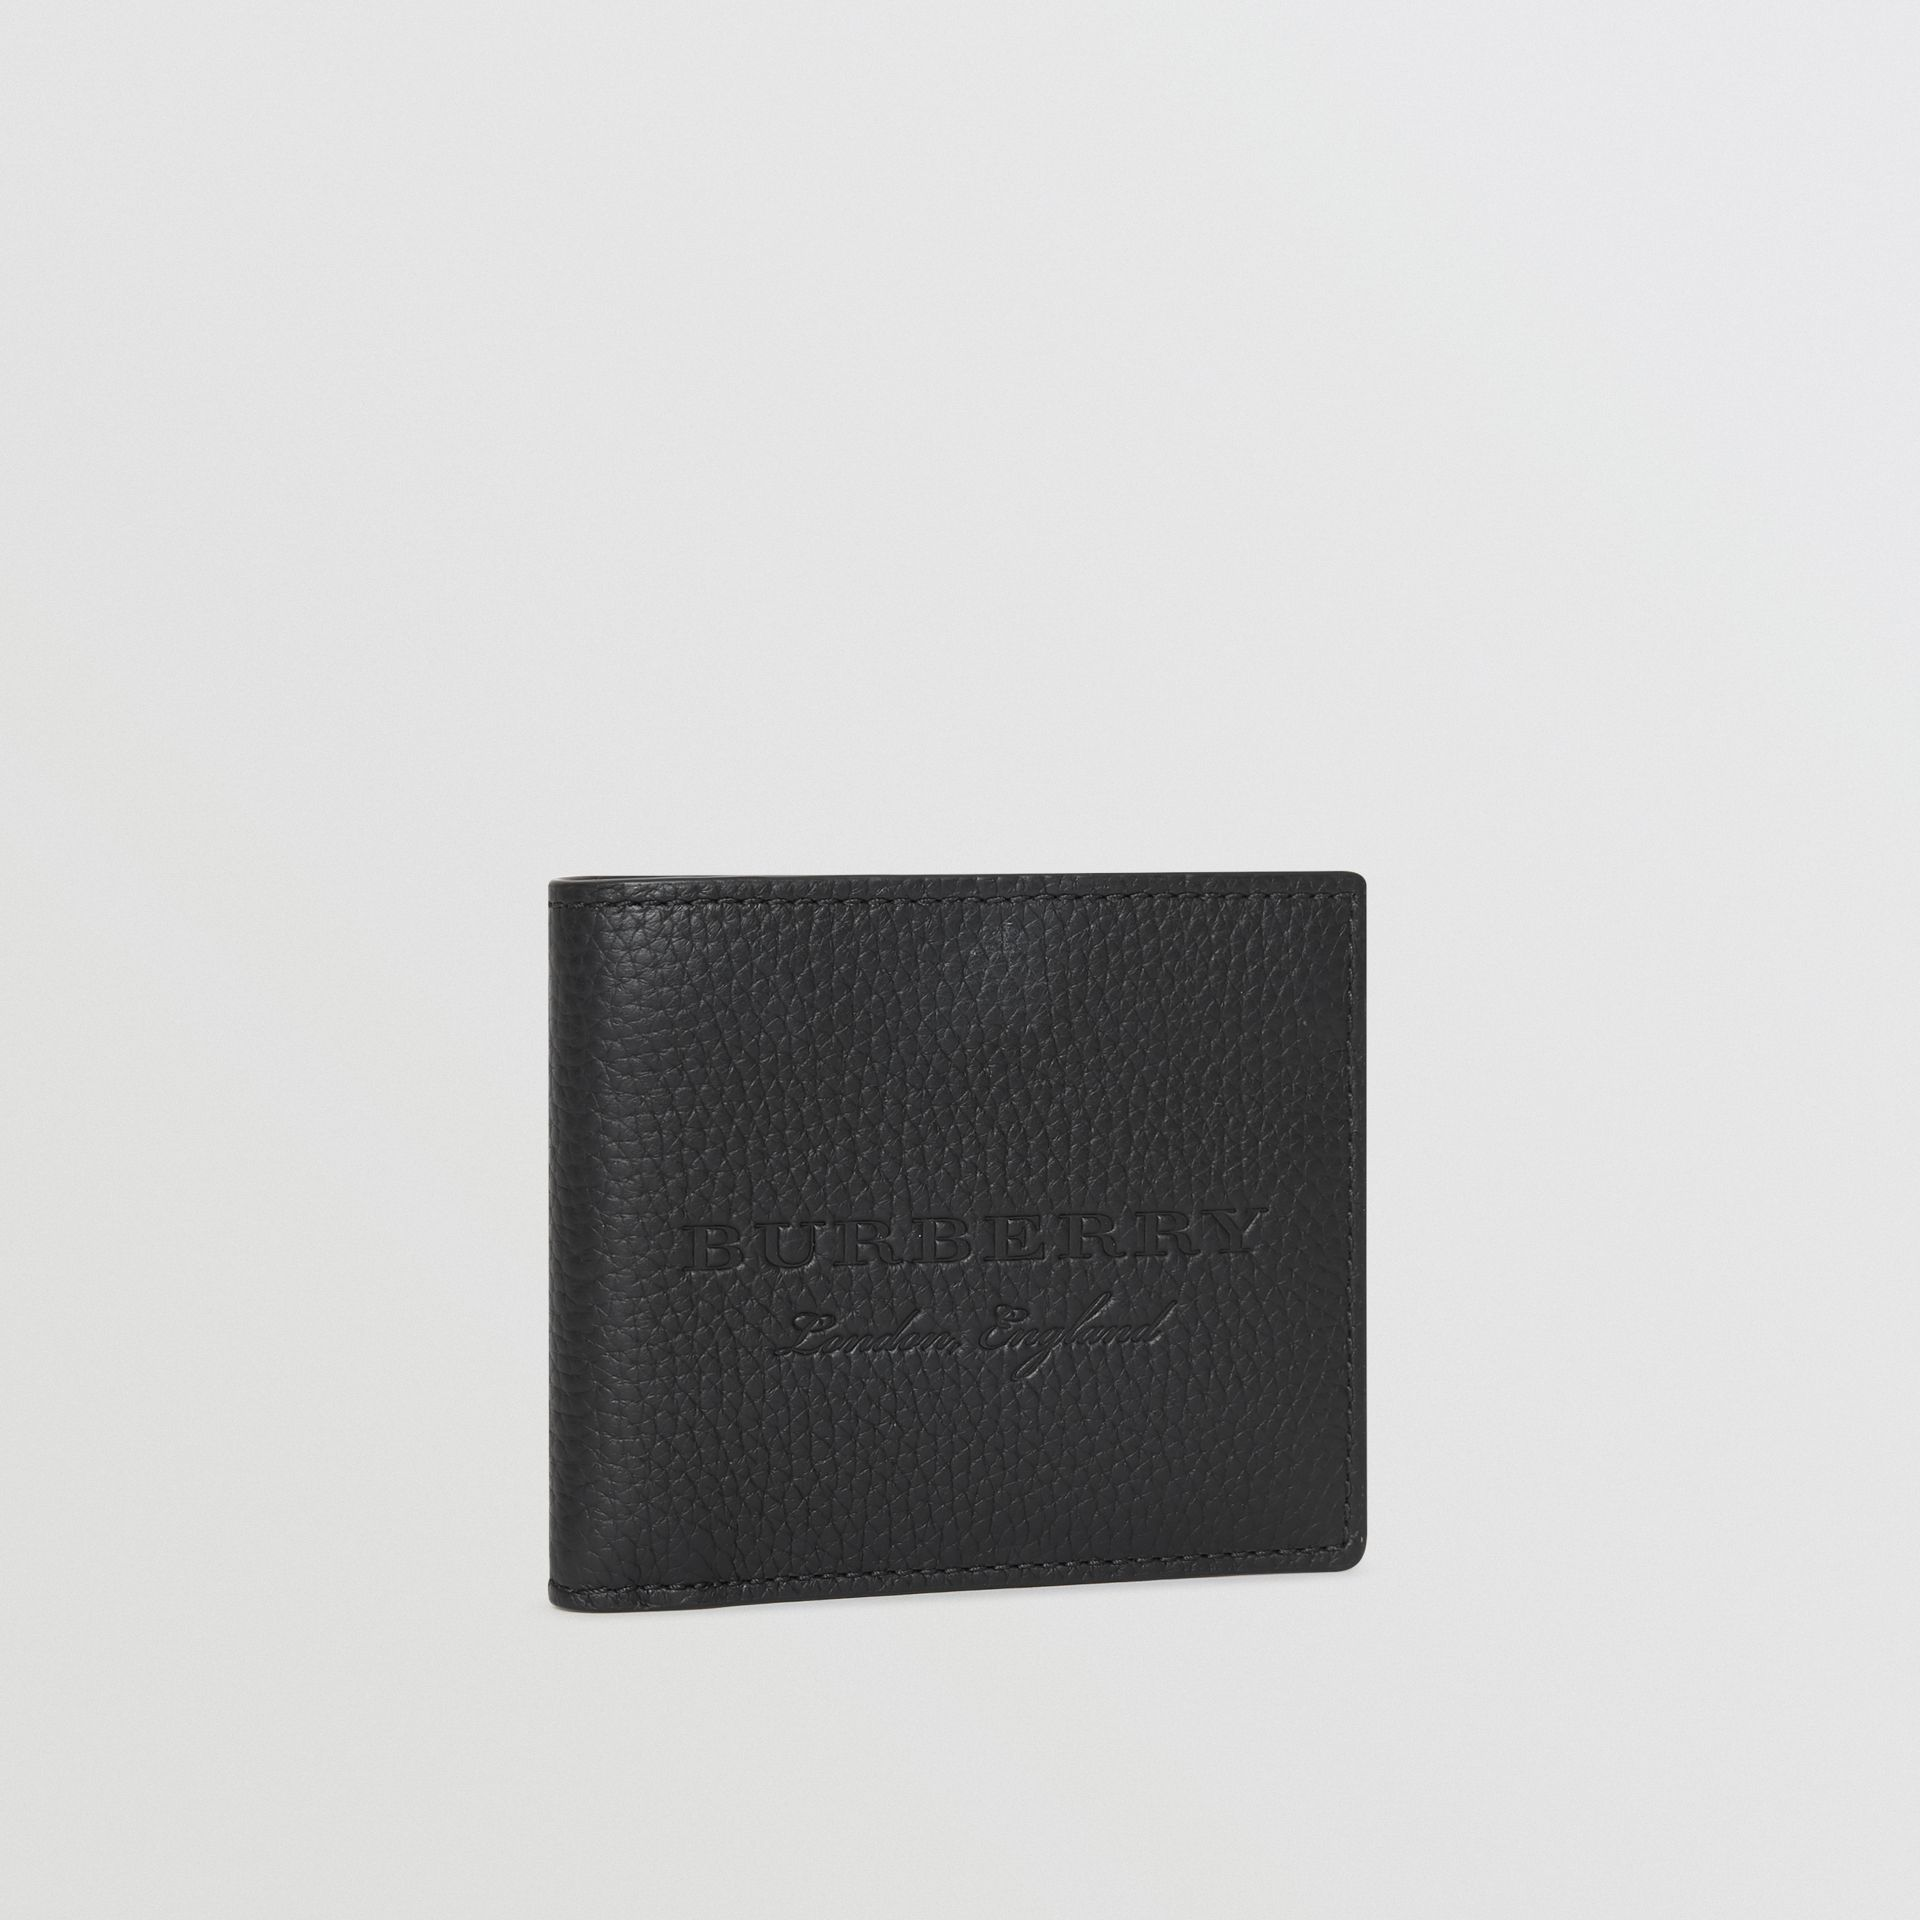 Embossed Leather Bifold Wallet in Black - Men | Burberry - gallery image 4